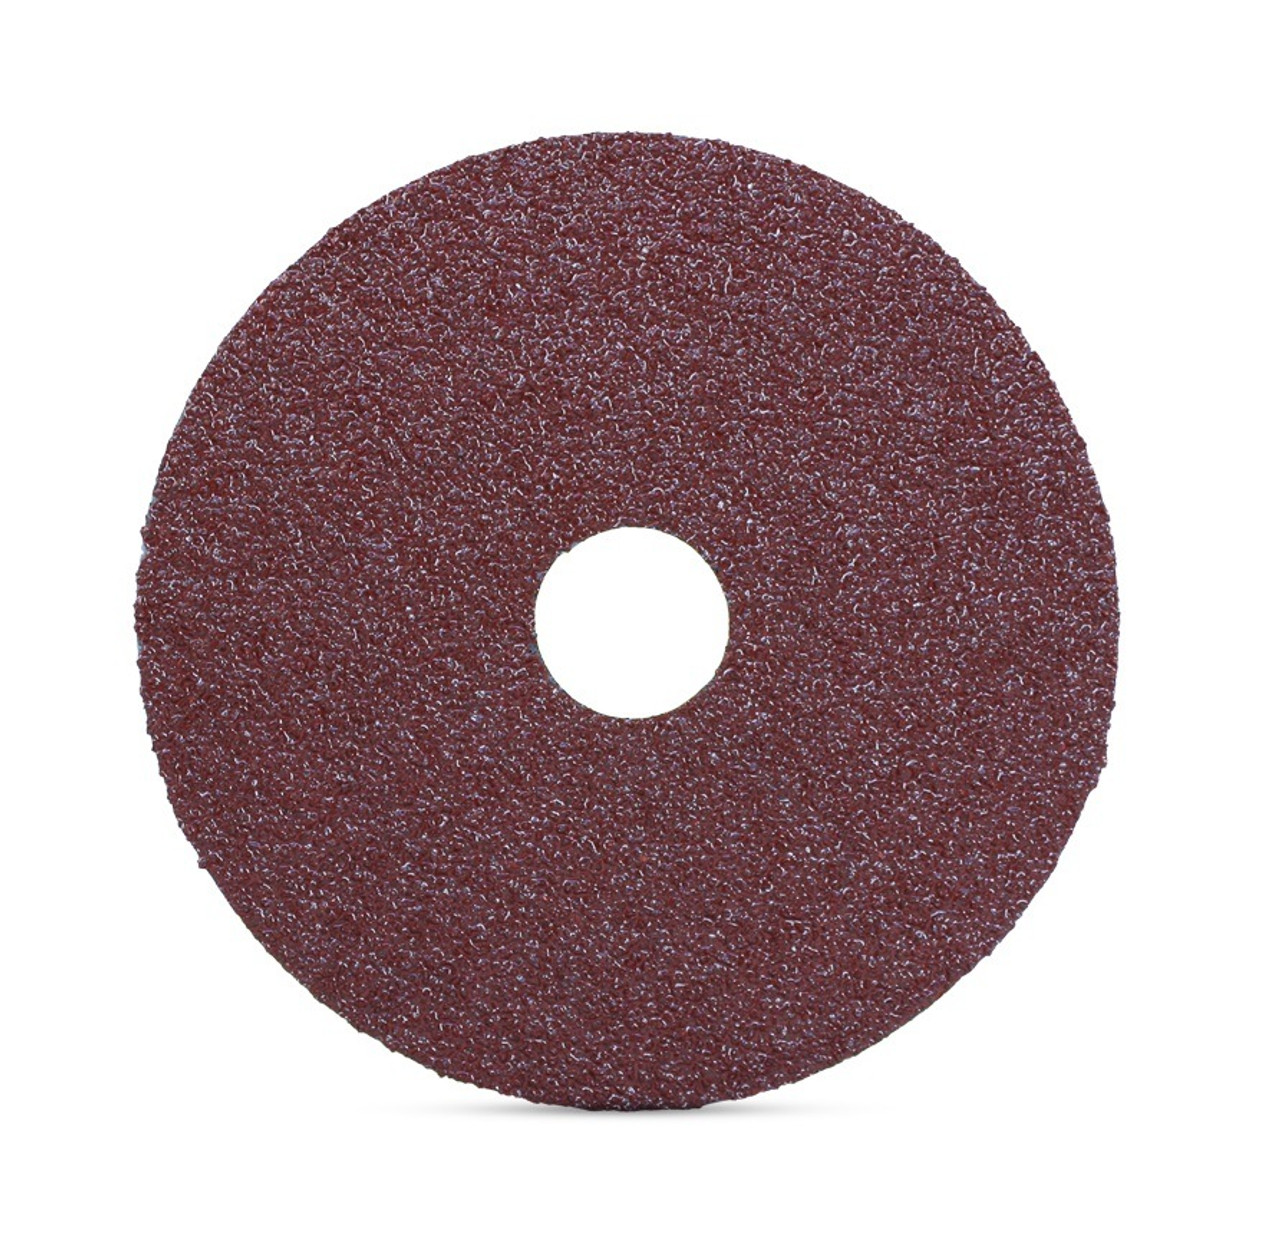 "100 Pack 4.5/"" Black Hawk 80 Grit A//O Resin Fiber Disc Grinding /& Sanding Discs"